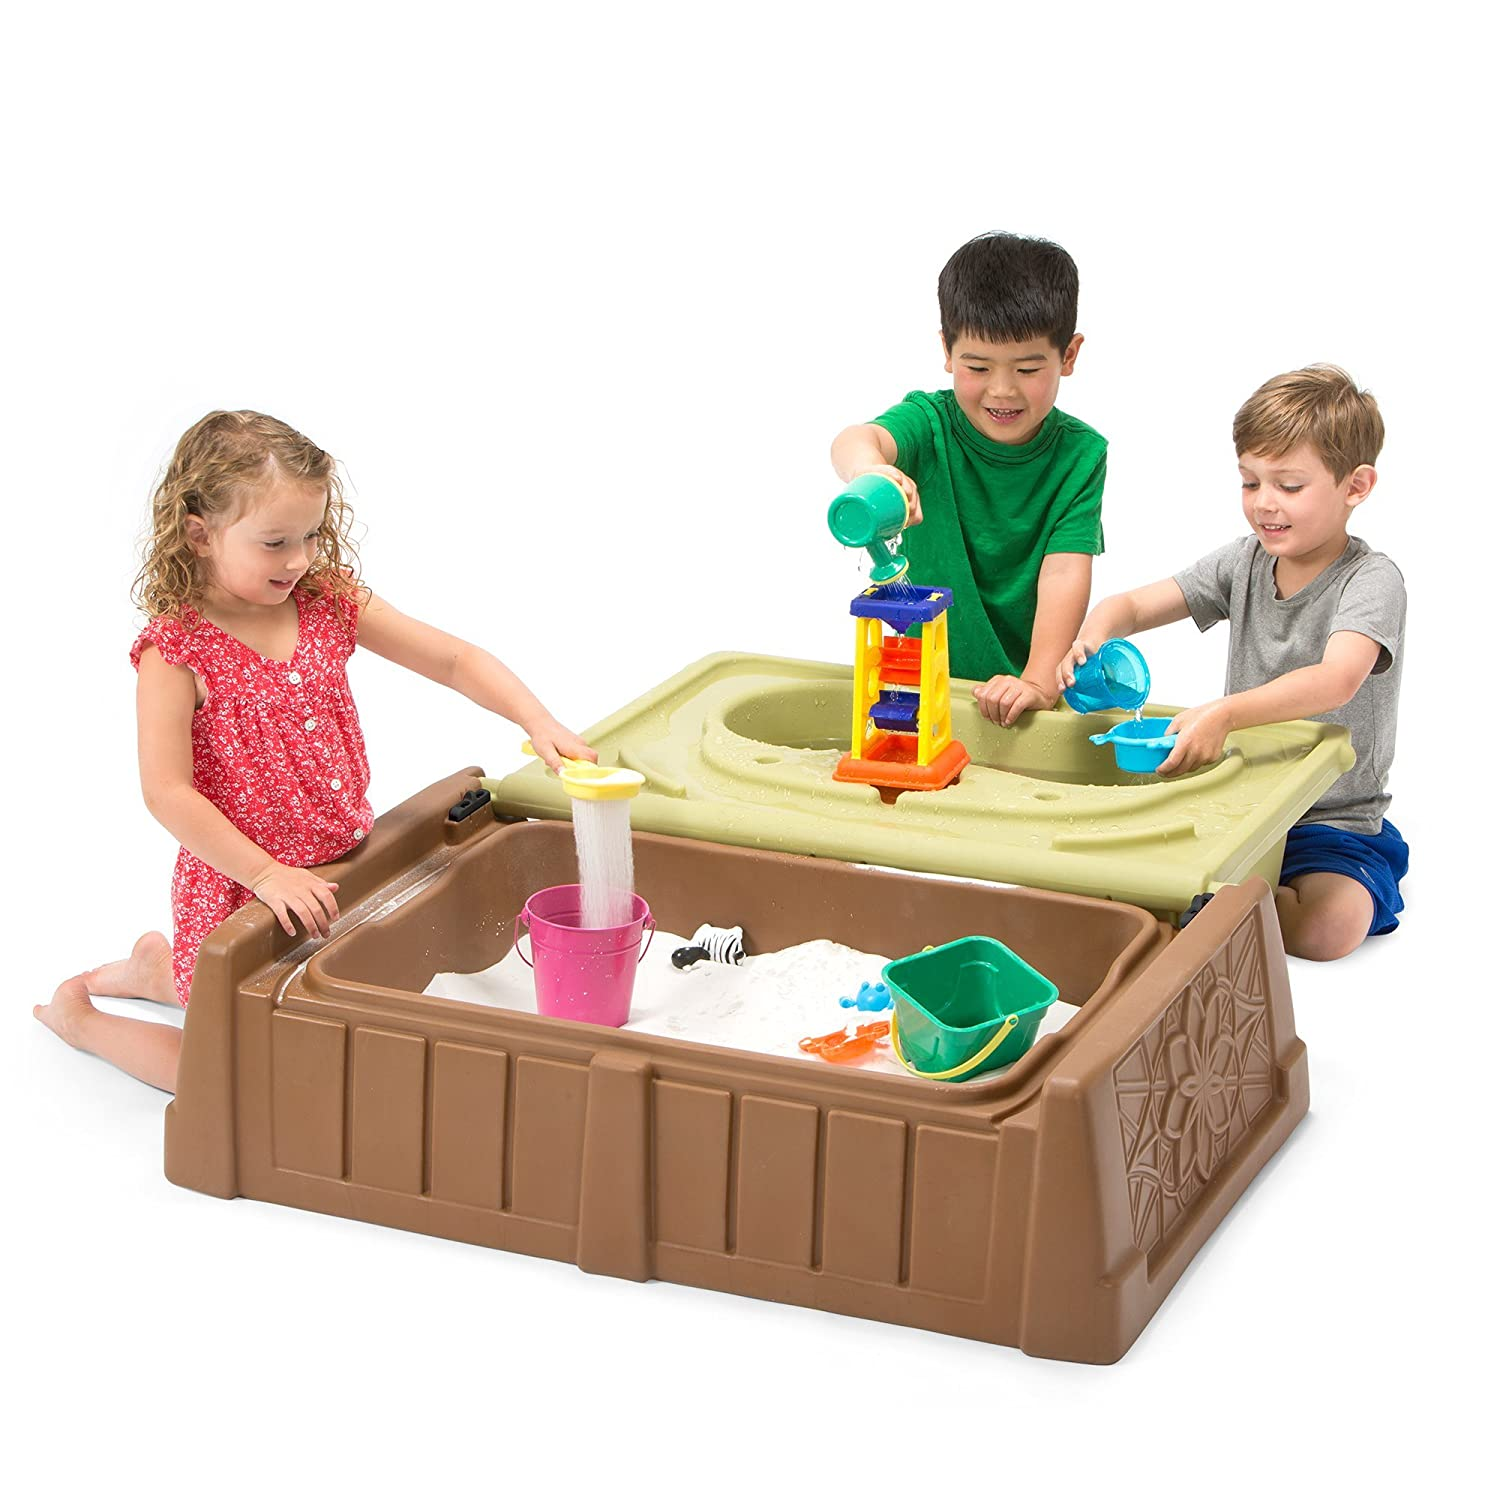 Kids Outdoor Storage Bench//Sand and Water Activity Station Simplay3 Sand and Water Bench